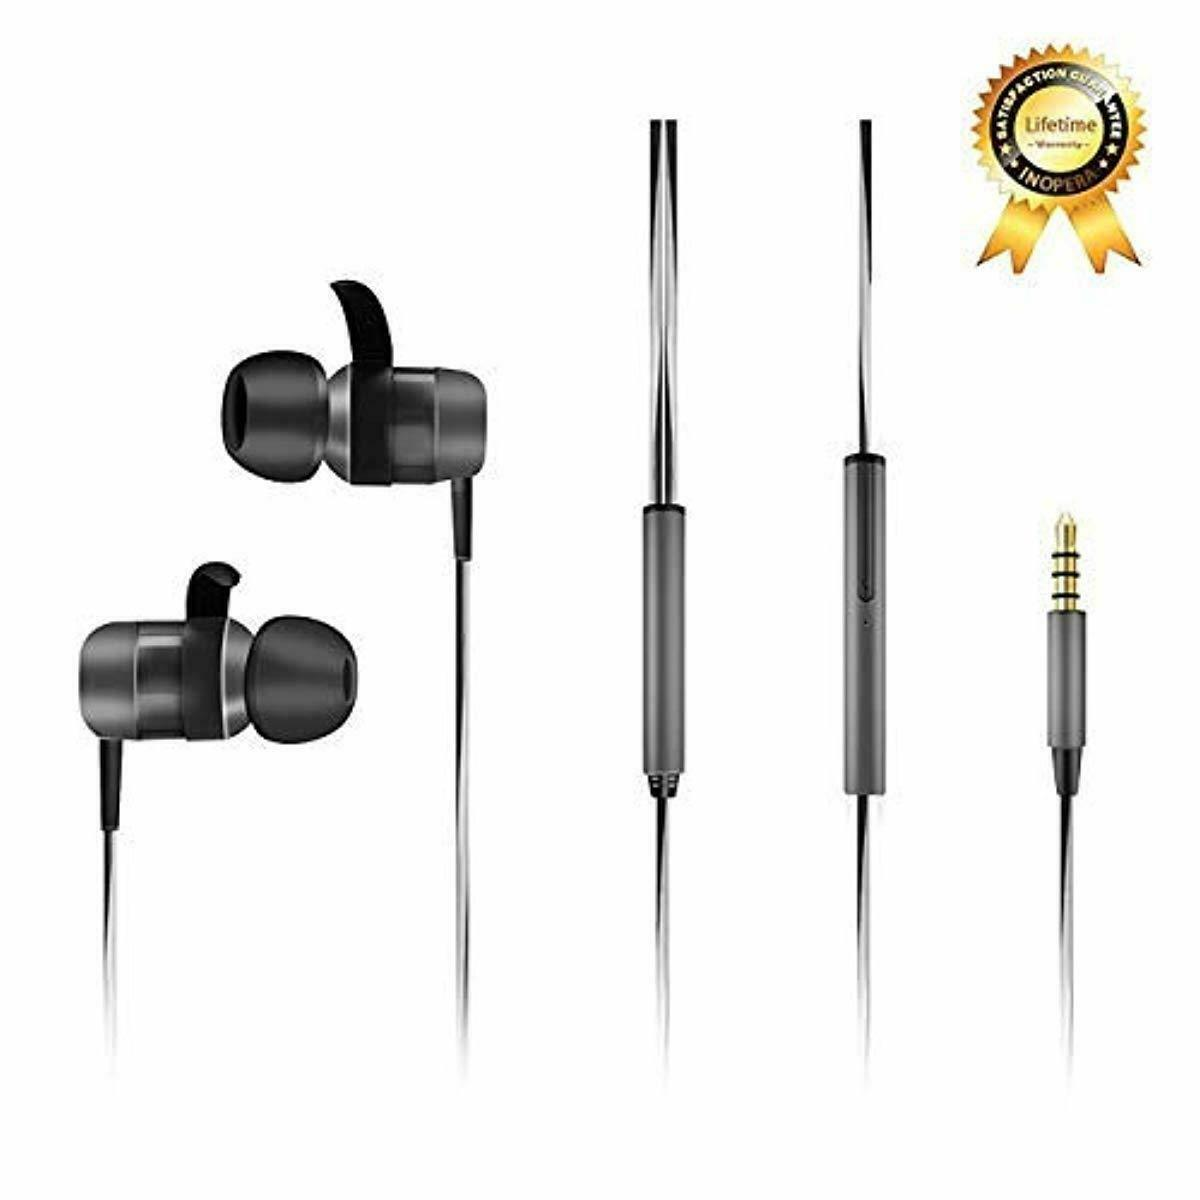 inOpera Audio Wired Sport Earbuds In-Ear Wired Sport Headphones for Cell Phones